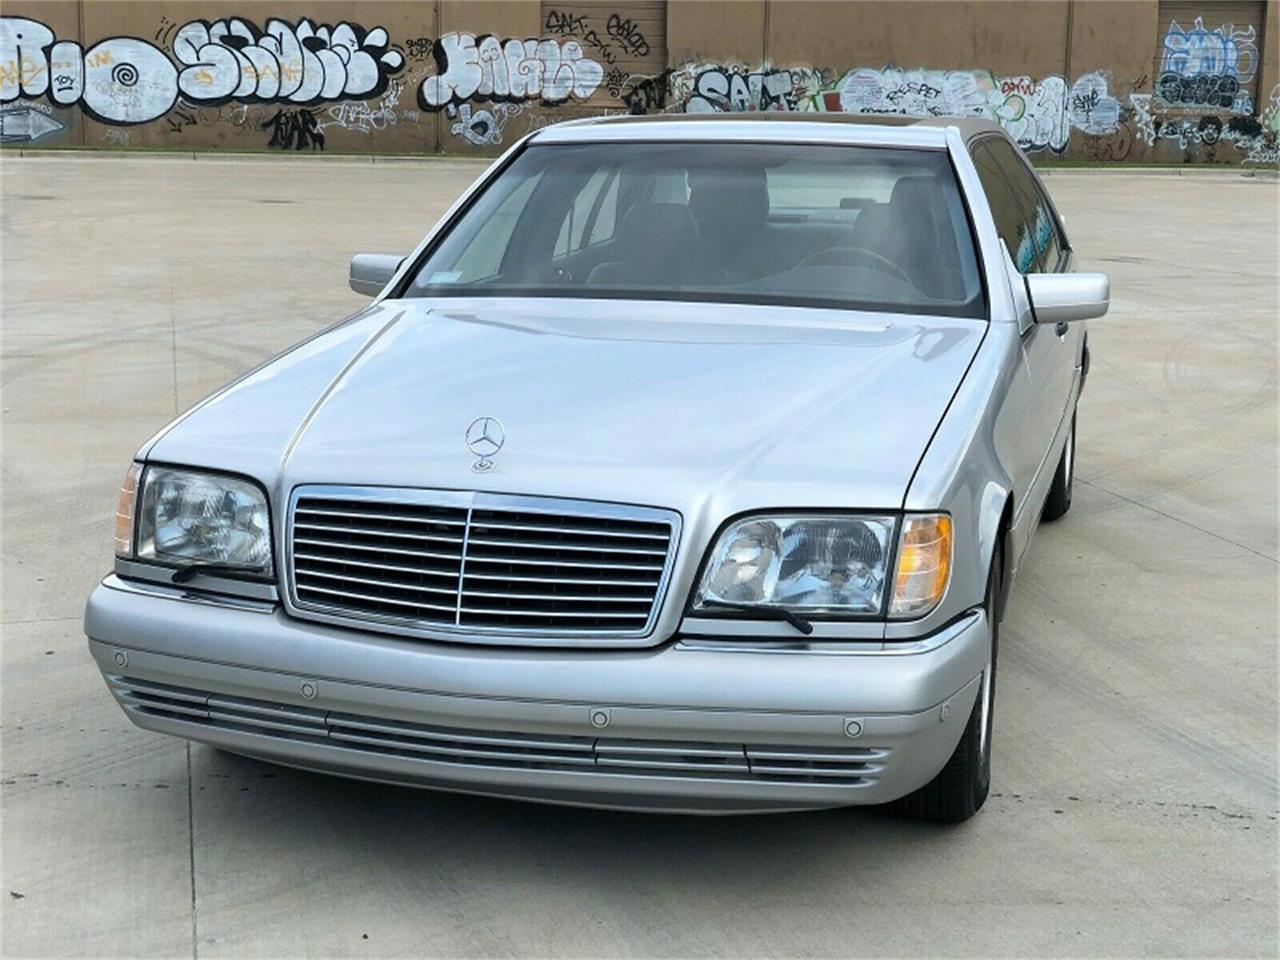 for sale 1997 mercedes-benz s-class in los angeles, california cars - los angeles, ca at geebo